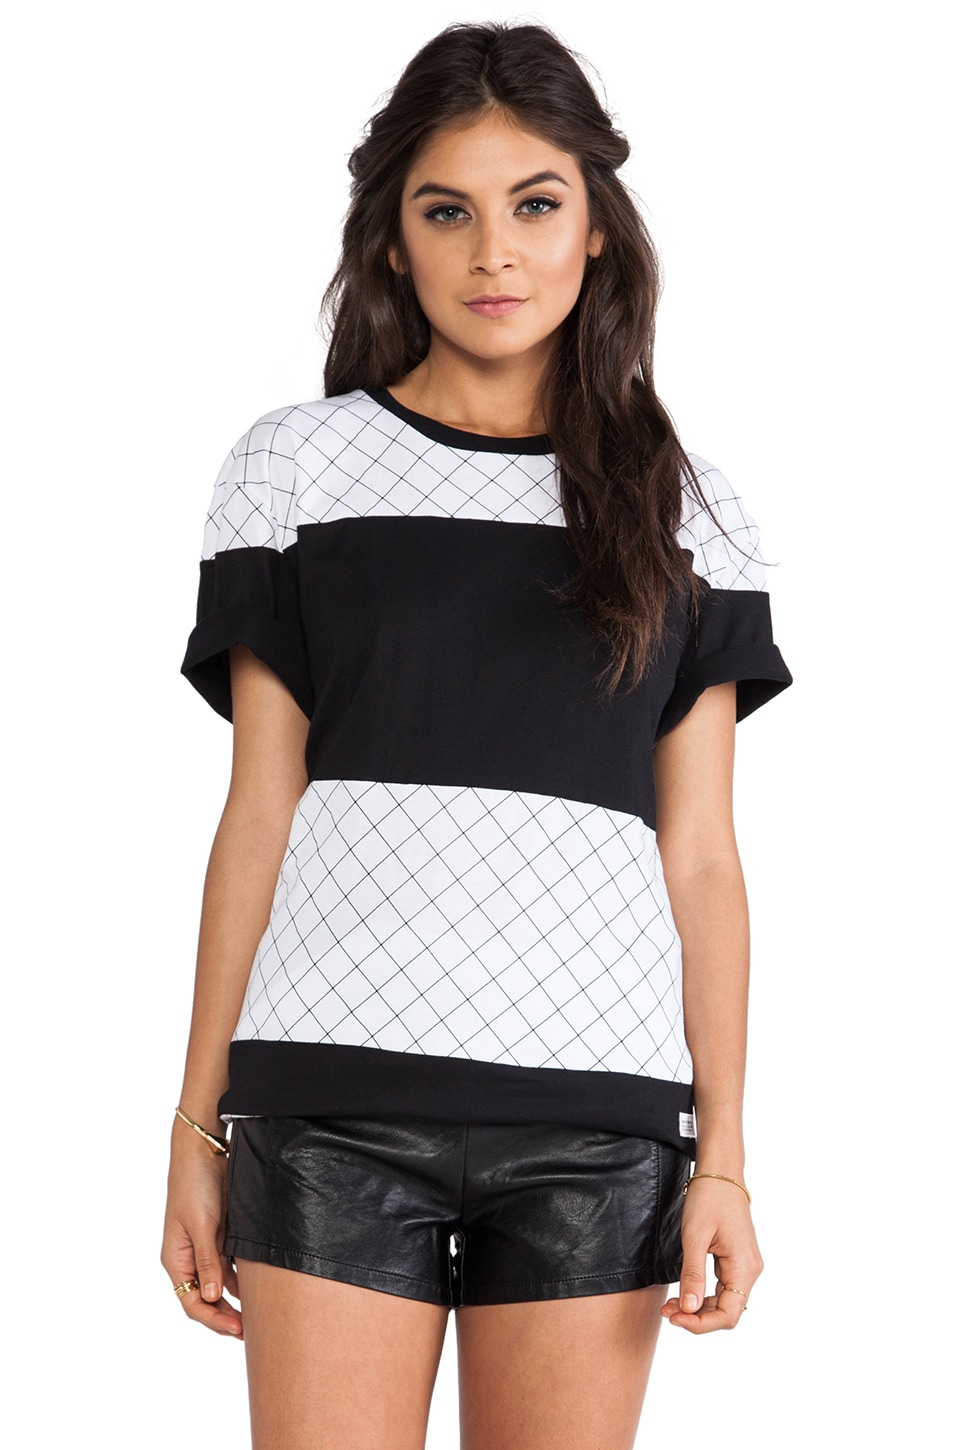 Stampd Gridded Panel Tee in Black & White